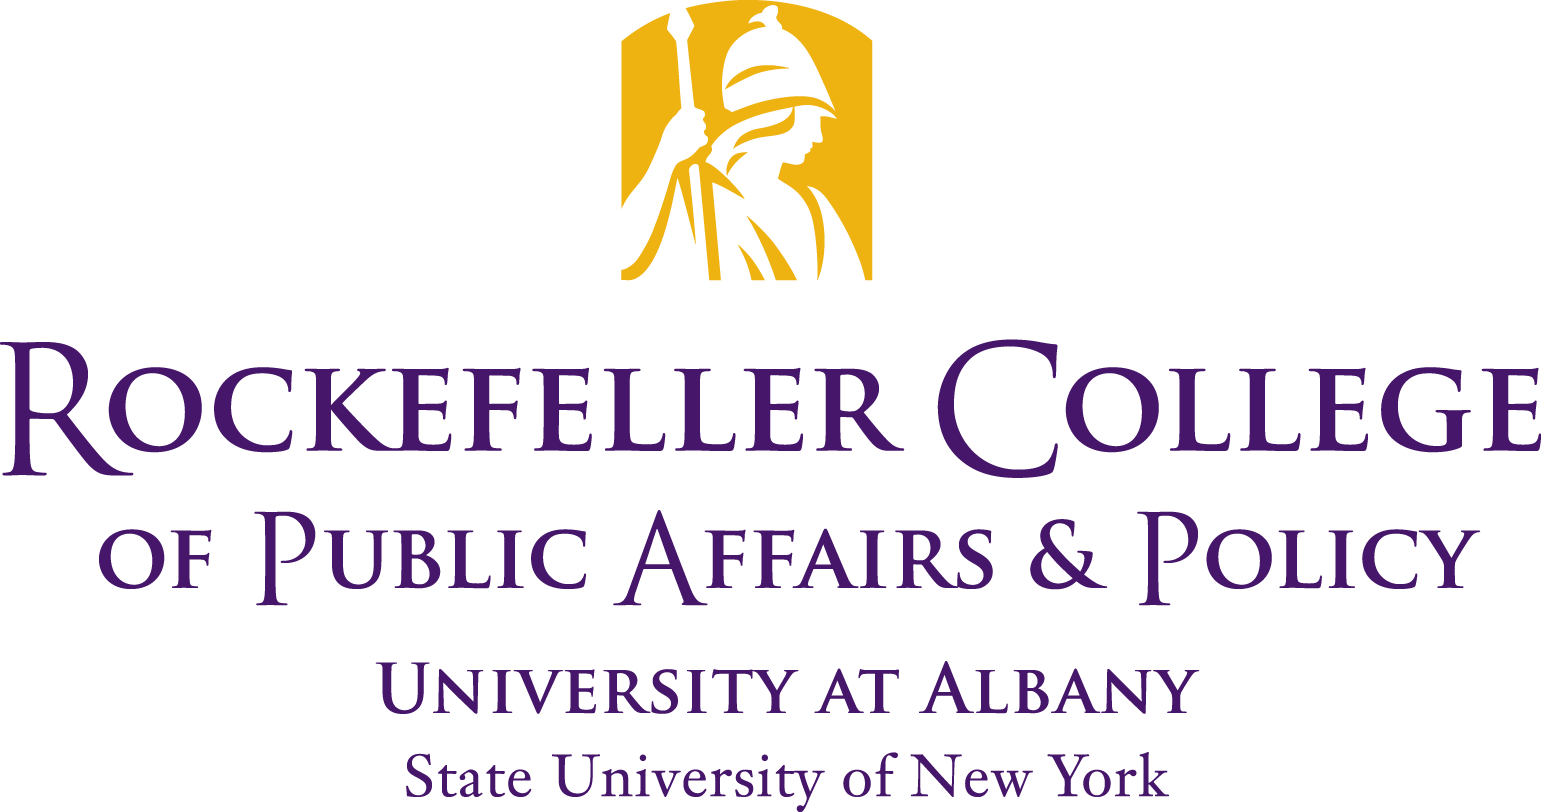 Rockefeller College of Public Affairs & Policy. University at Albany. State University of New York